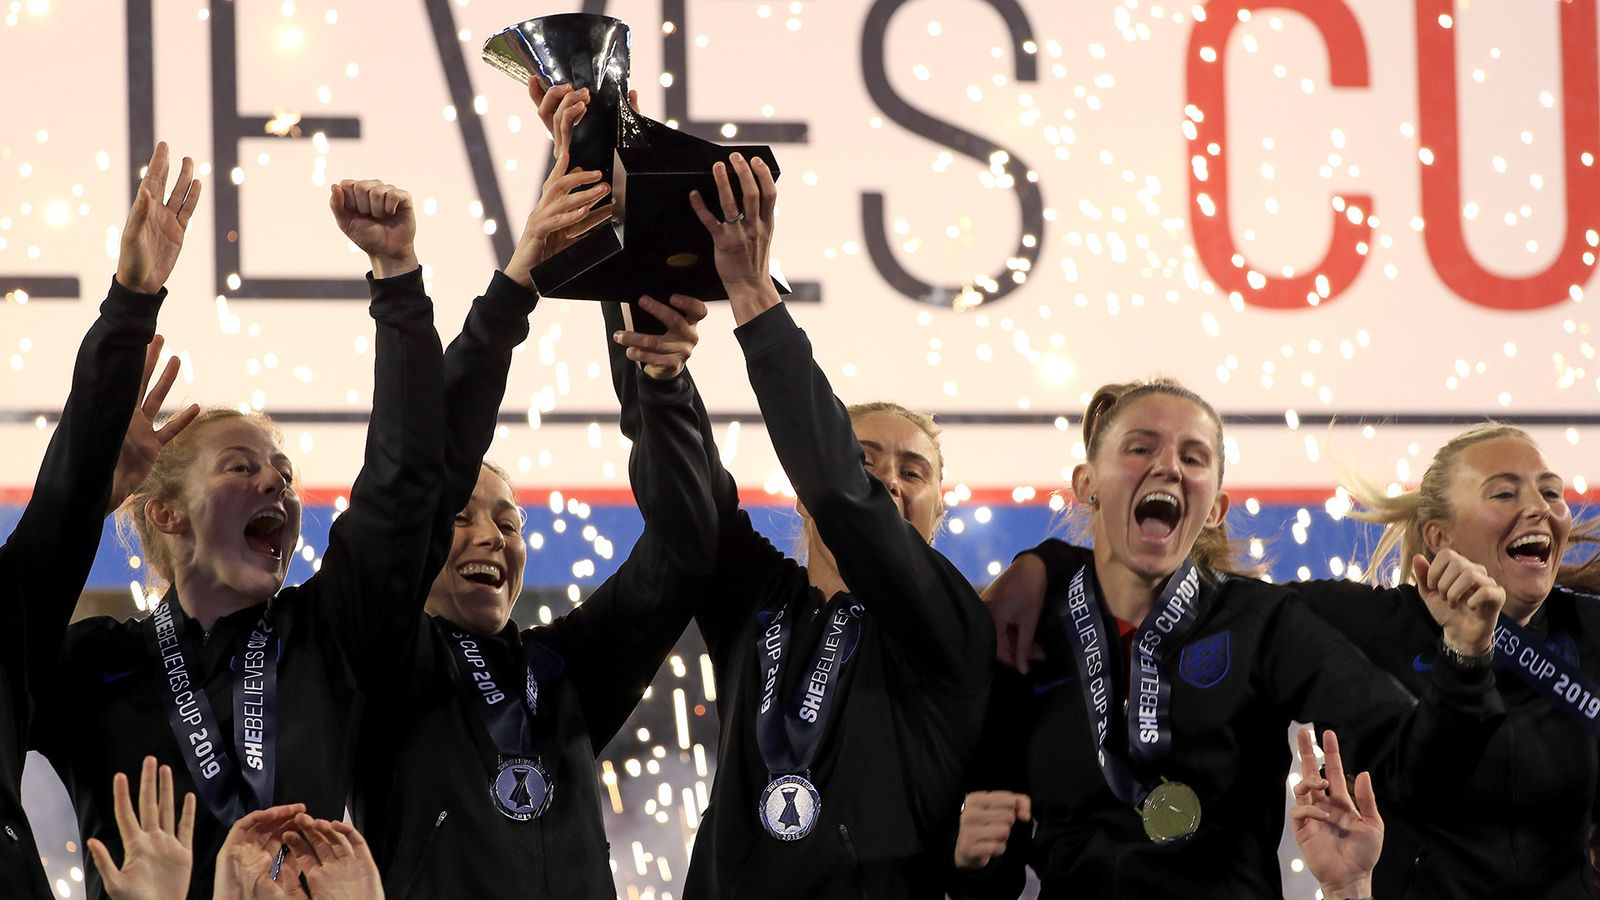 SheBelieves Cup: Can England Women retain their title?